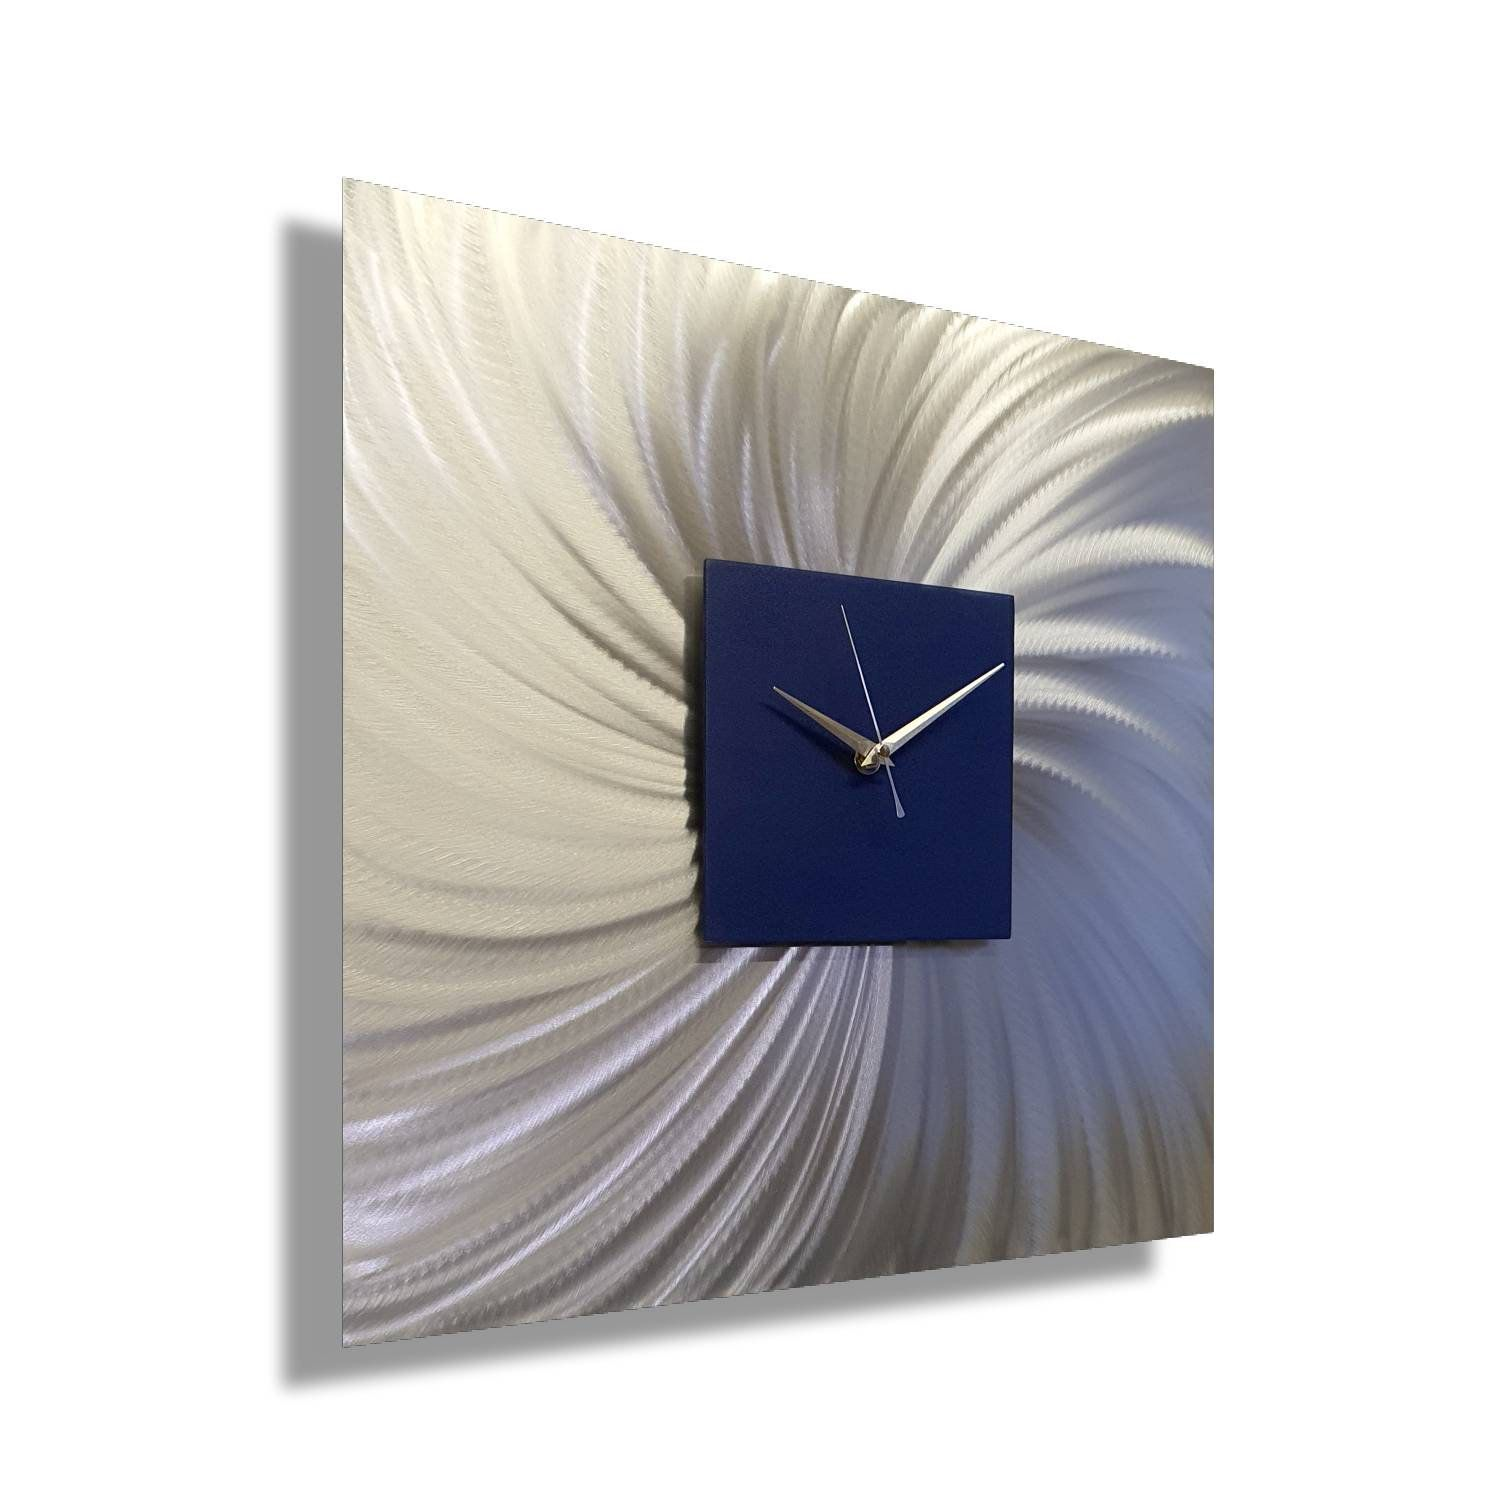 Navy Blue Wall Art Clock Silver Modern Home Decor Sapphire Etsy In 2020 Navy Blue Walls Metal Sculpture Wall Art Navy Blue Wall Art